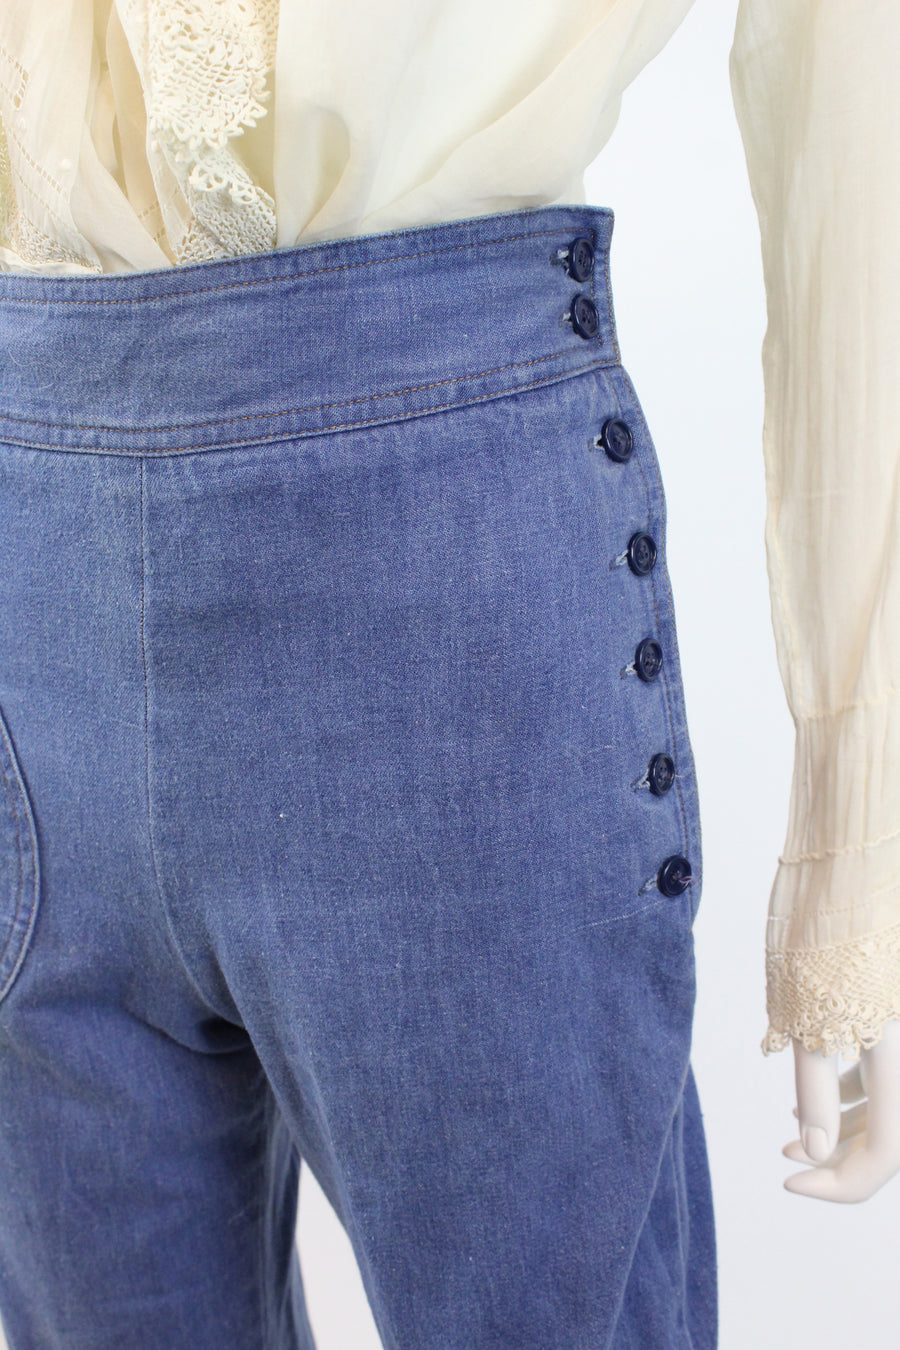 vintage 1970s does 1940s side button jeans xs | vintage wide legs pants